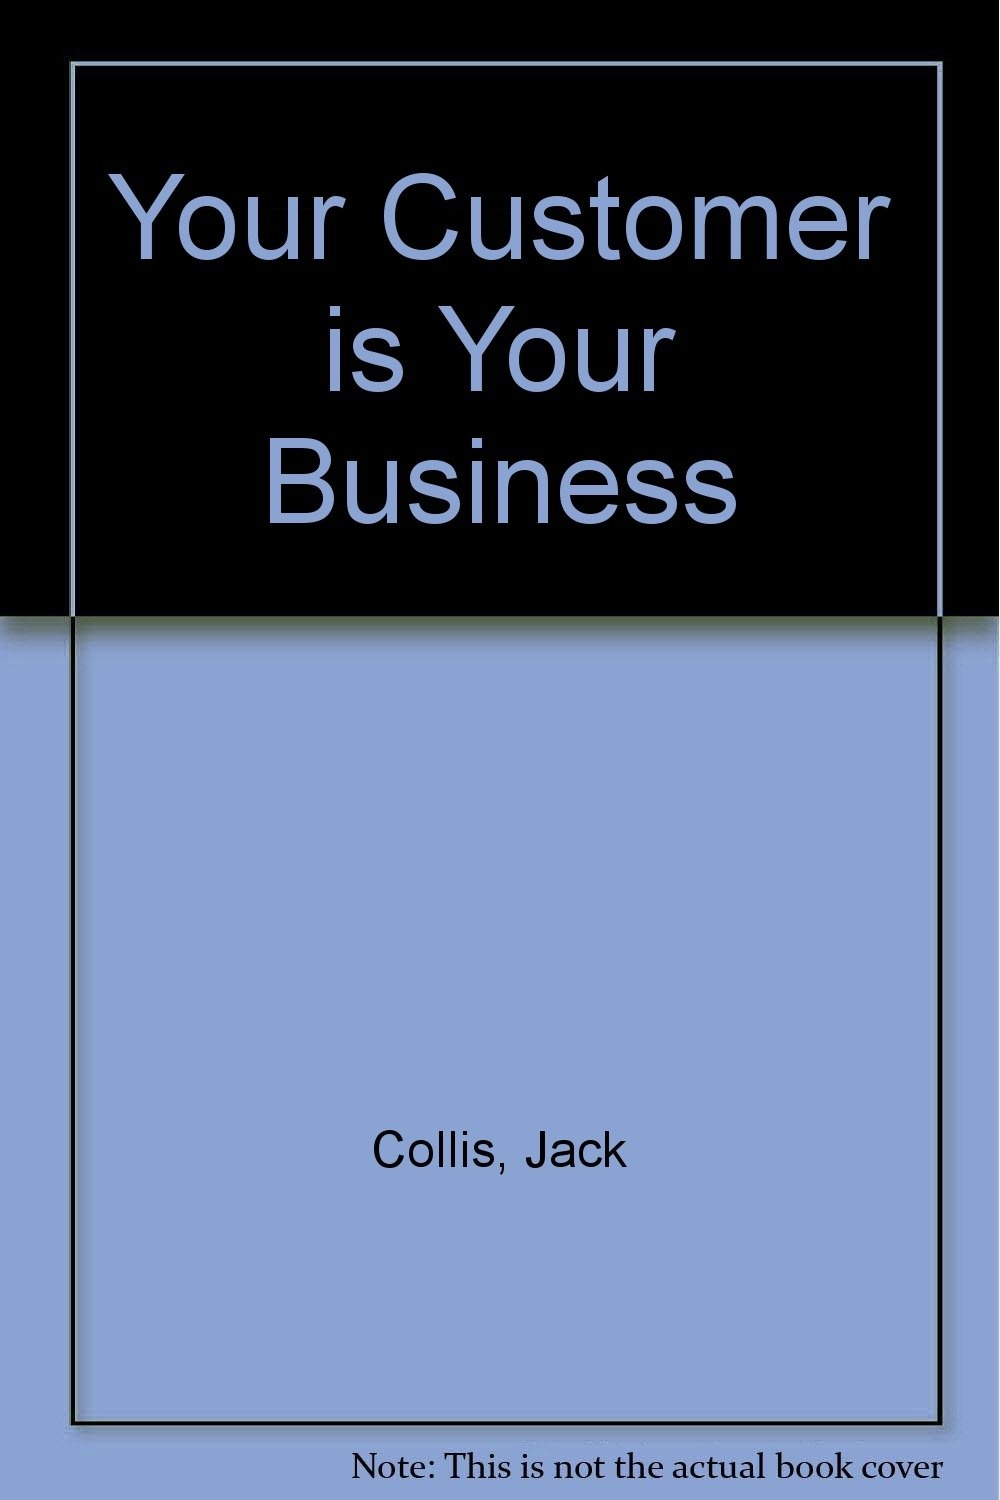 Your Customer is Your Business